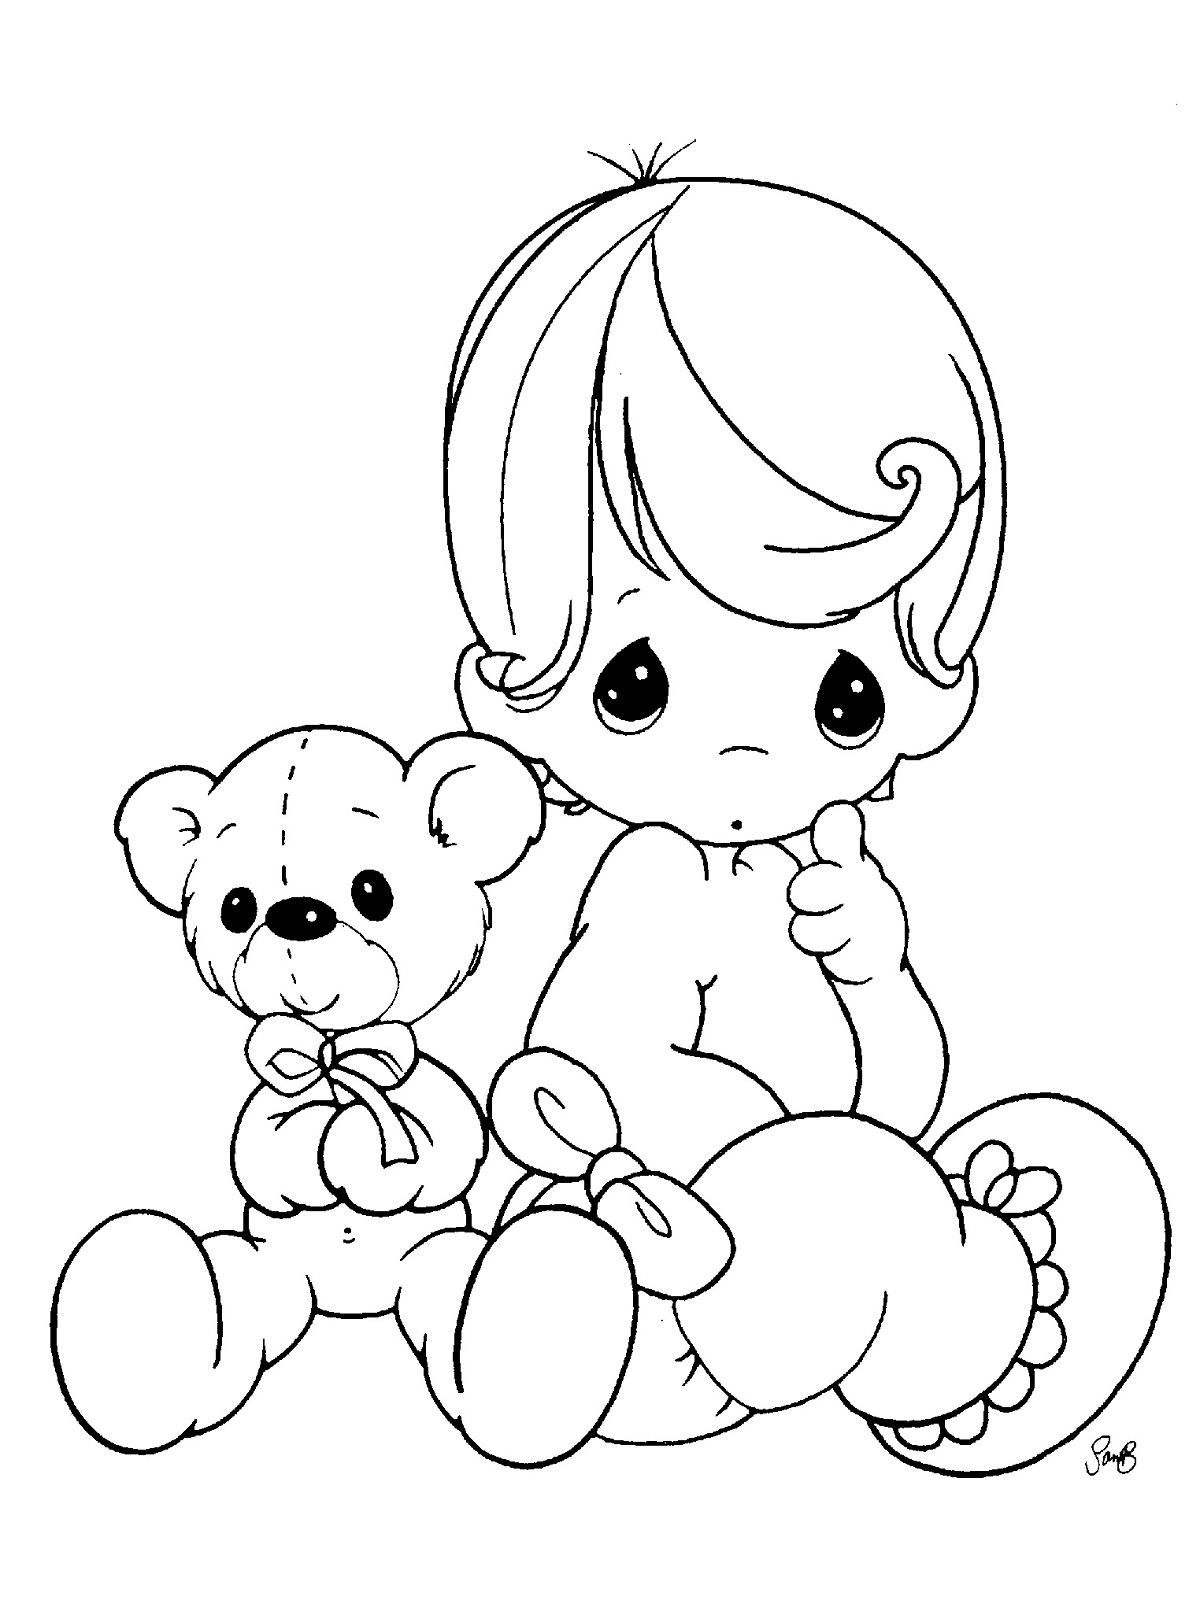 Free Printable Baby Coloring Pages For Kids Printable Baby Coloring Pages